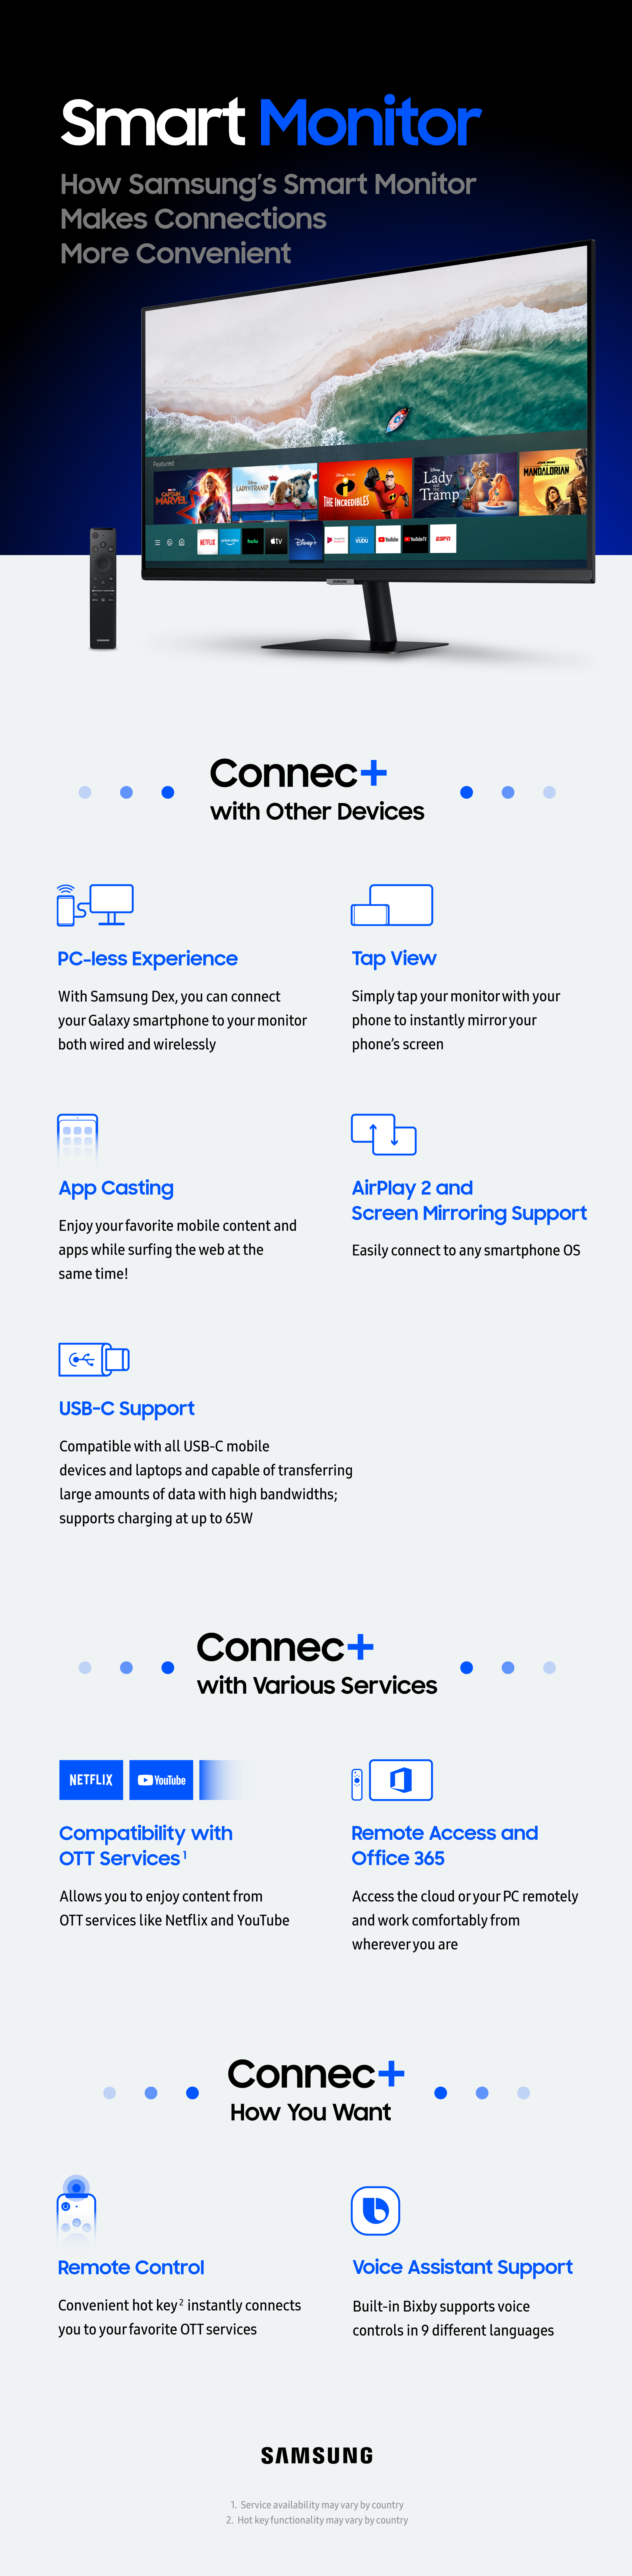 [Infographic] More Than a Monitor: How Samsung's Smart Monitor Keeps Users Connected - Image 1